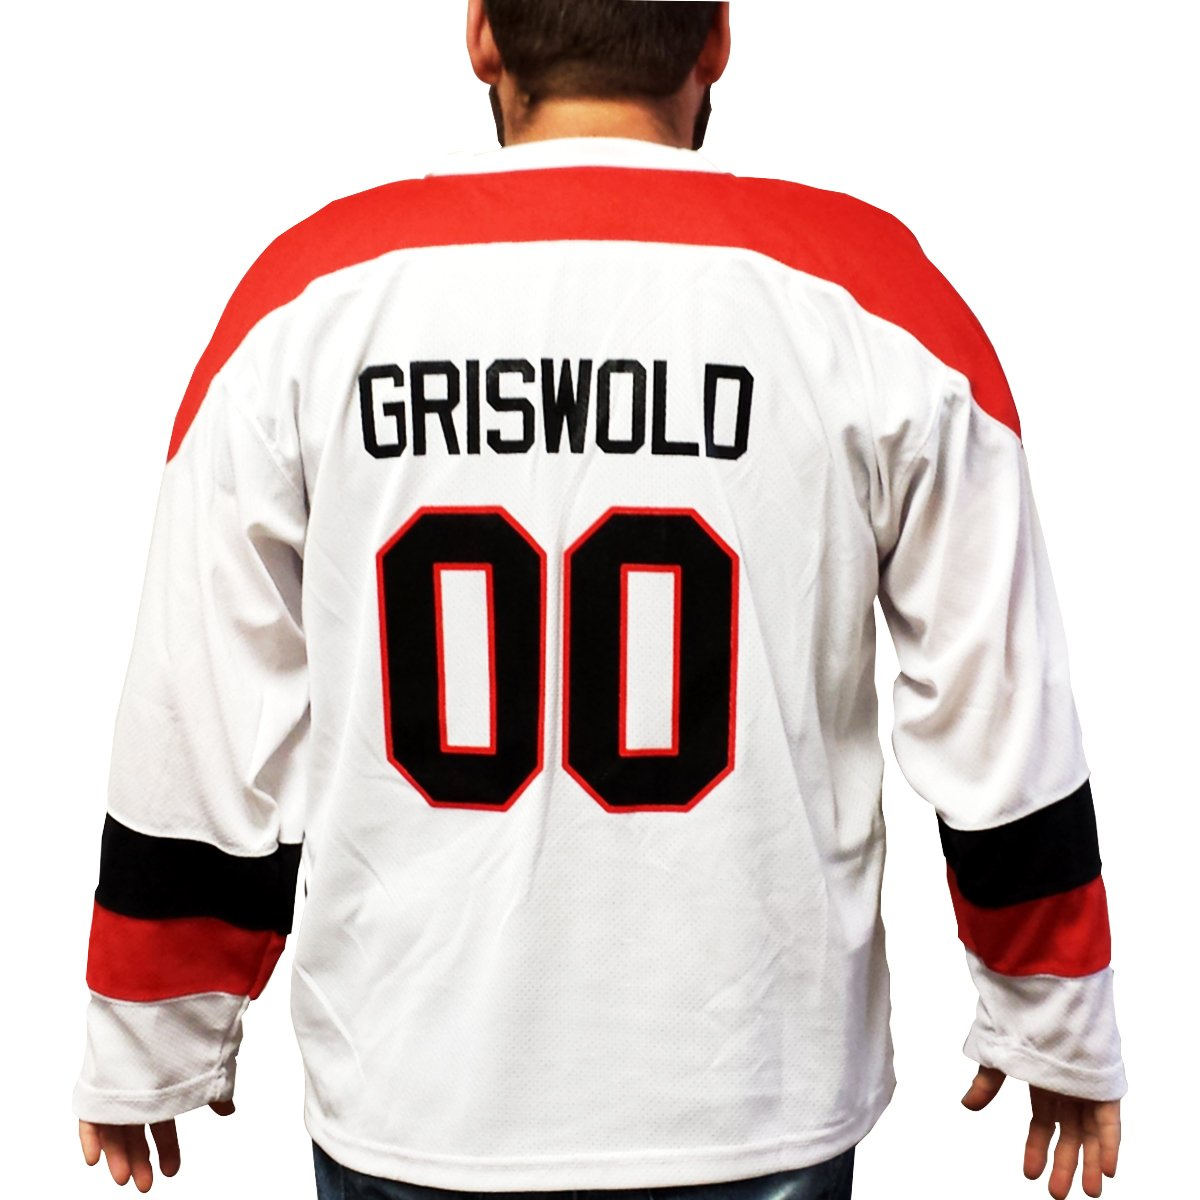 f6a28efa8 Clark Griswold Hockey Jersey Christmas Vacation 00 Xmas Movie Chicago  Griswald My Party Shirt